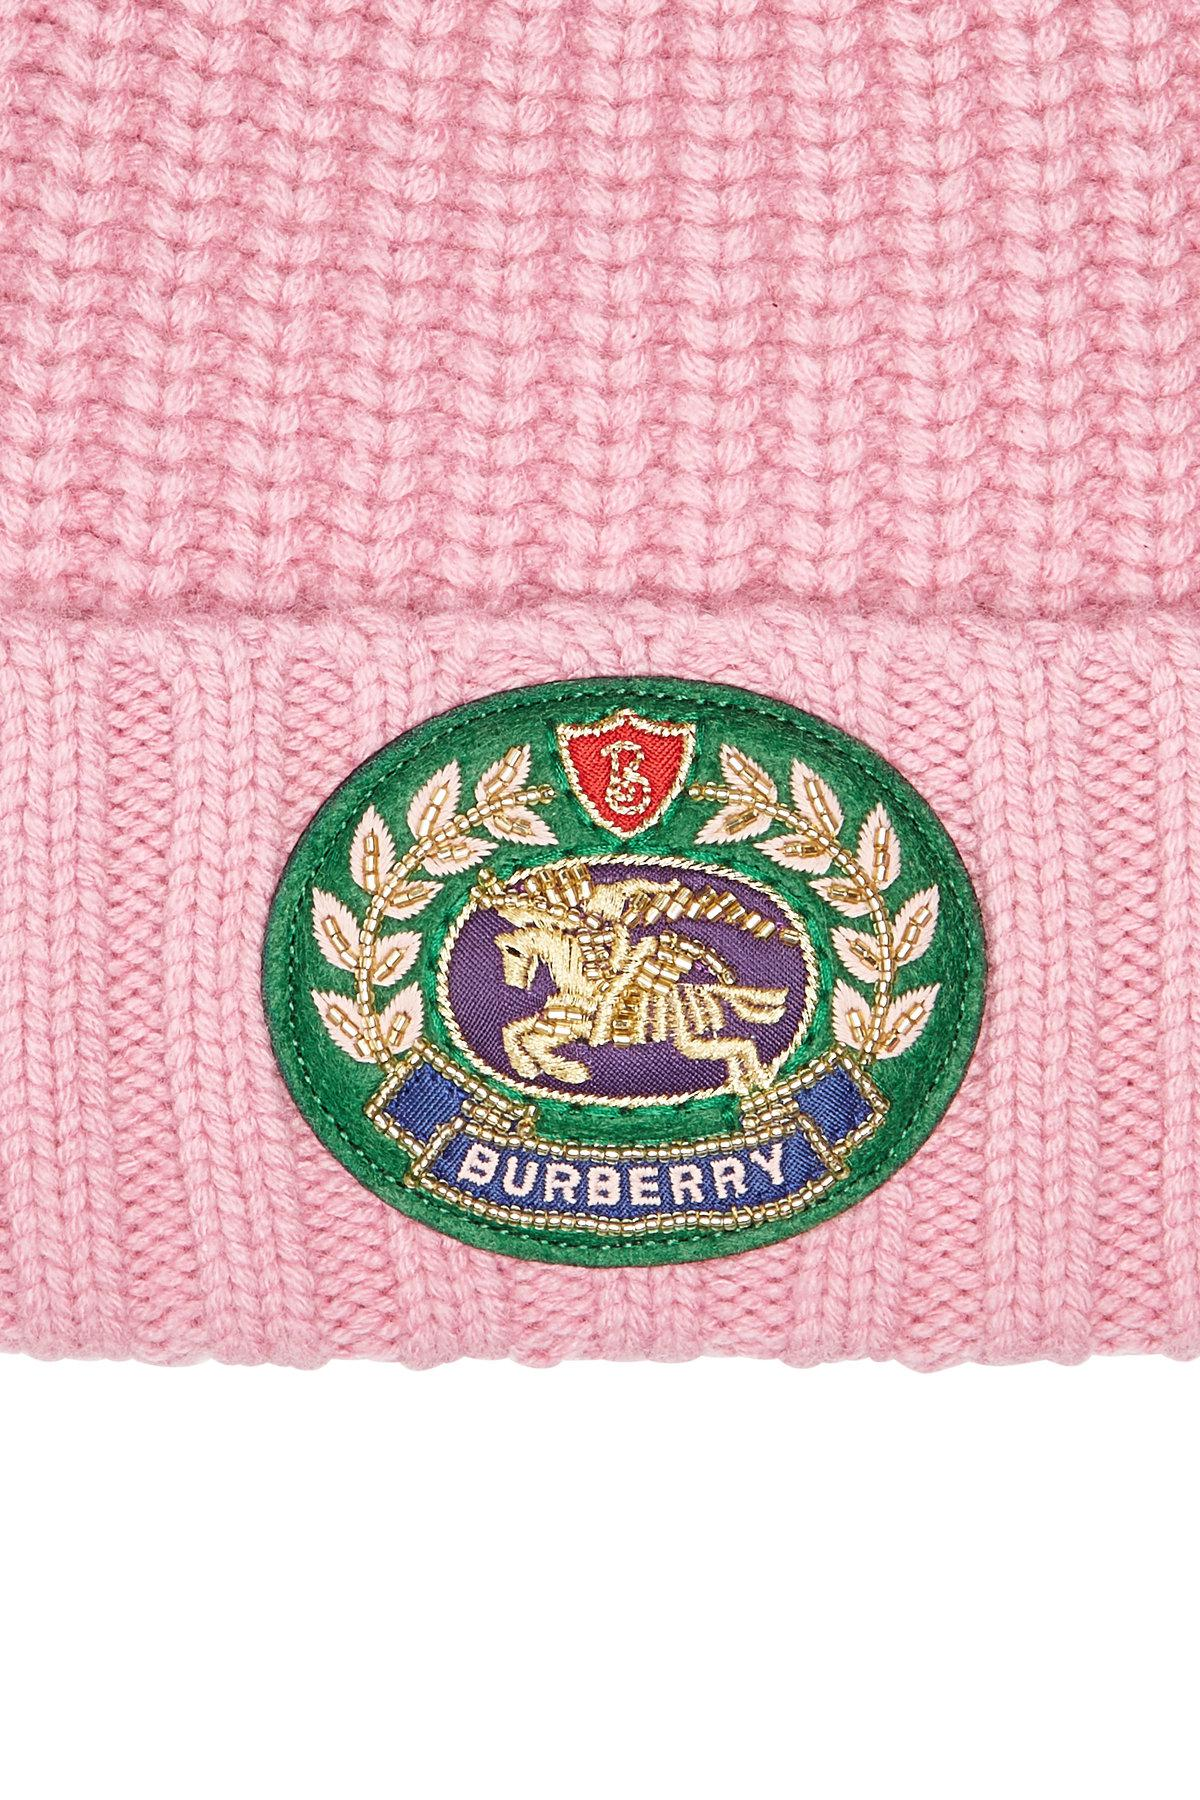 c0a3aaeccaf Burberry - Multicolor Hat With Wool And Cashmere - Lyst. View fullscreen